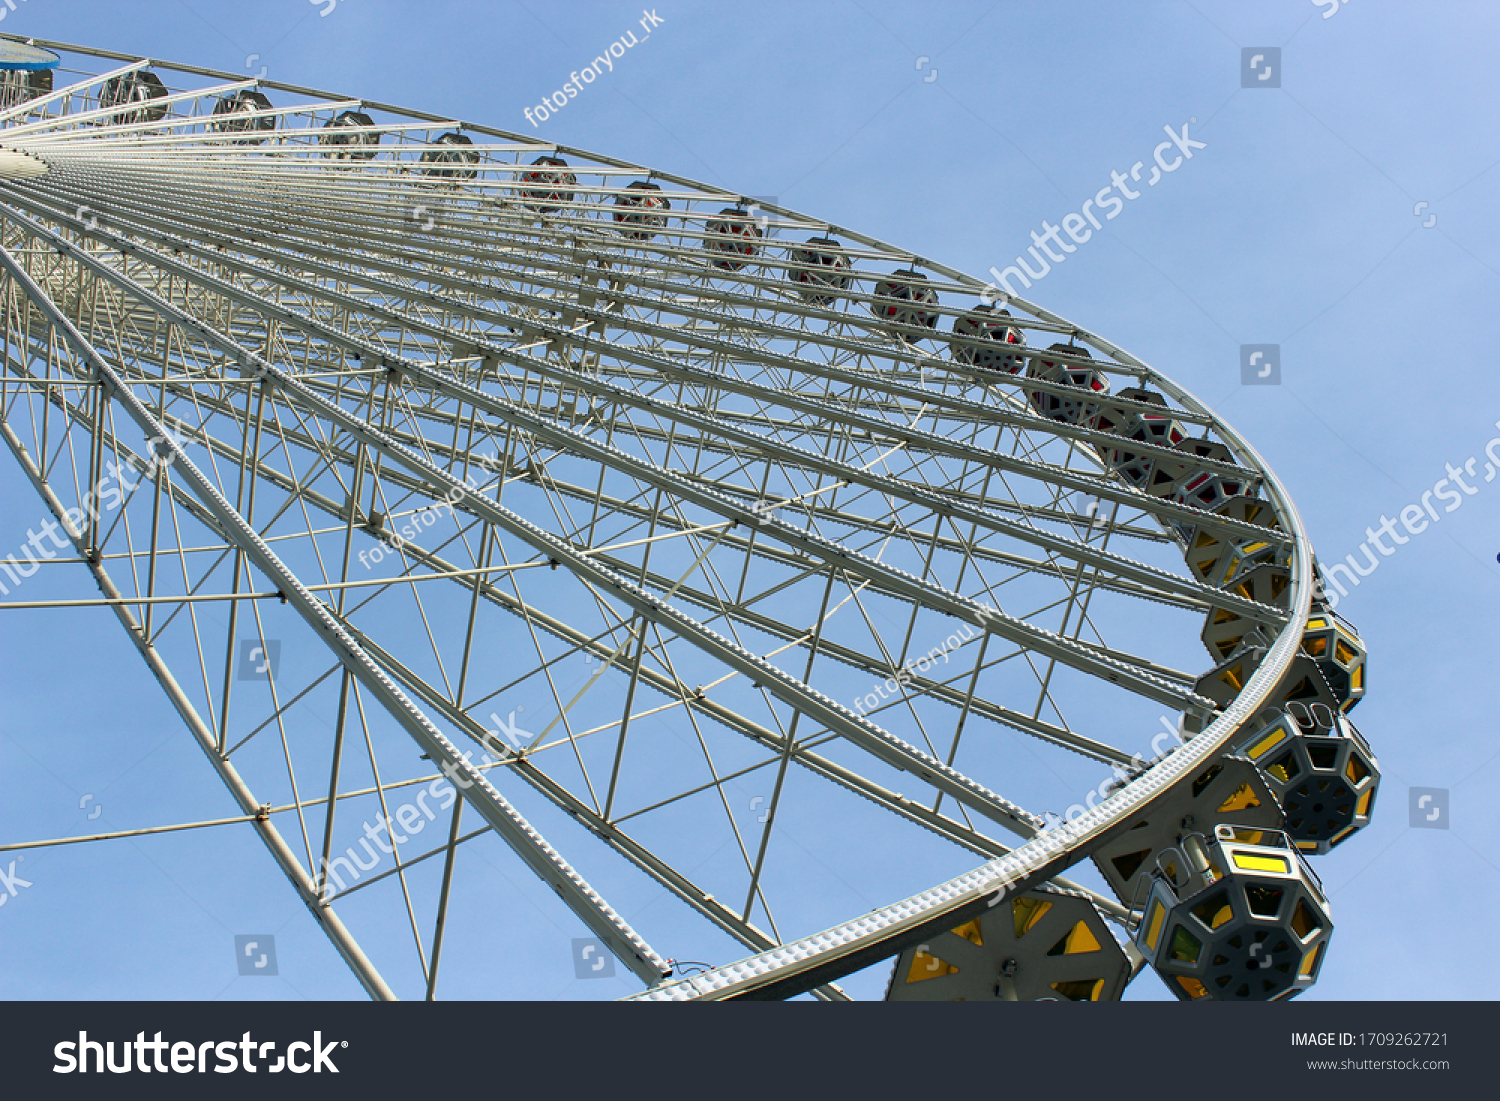 Ferris wheel in cologne against a blue sky